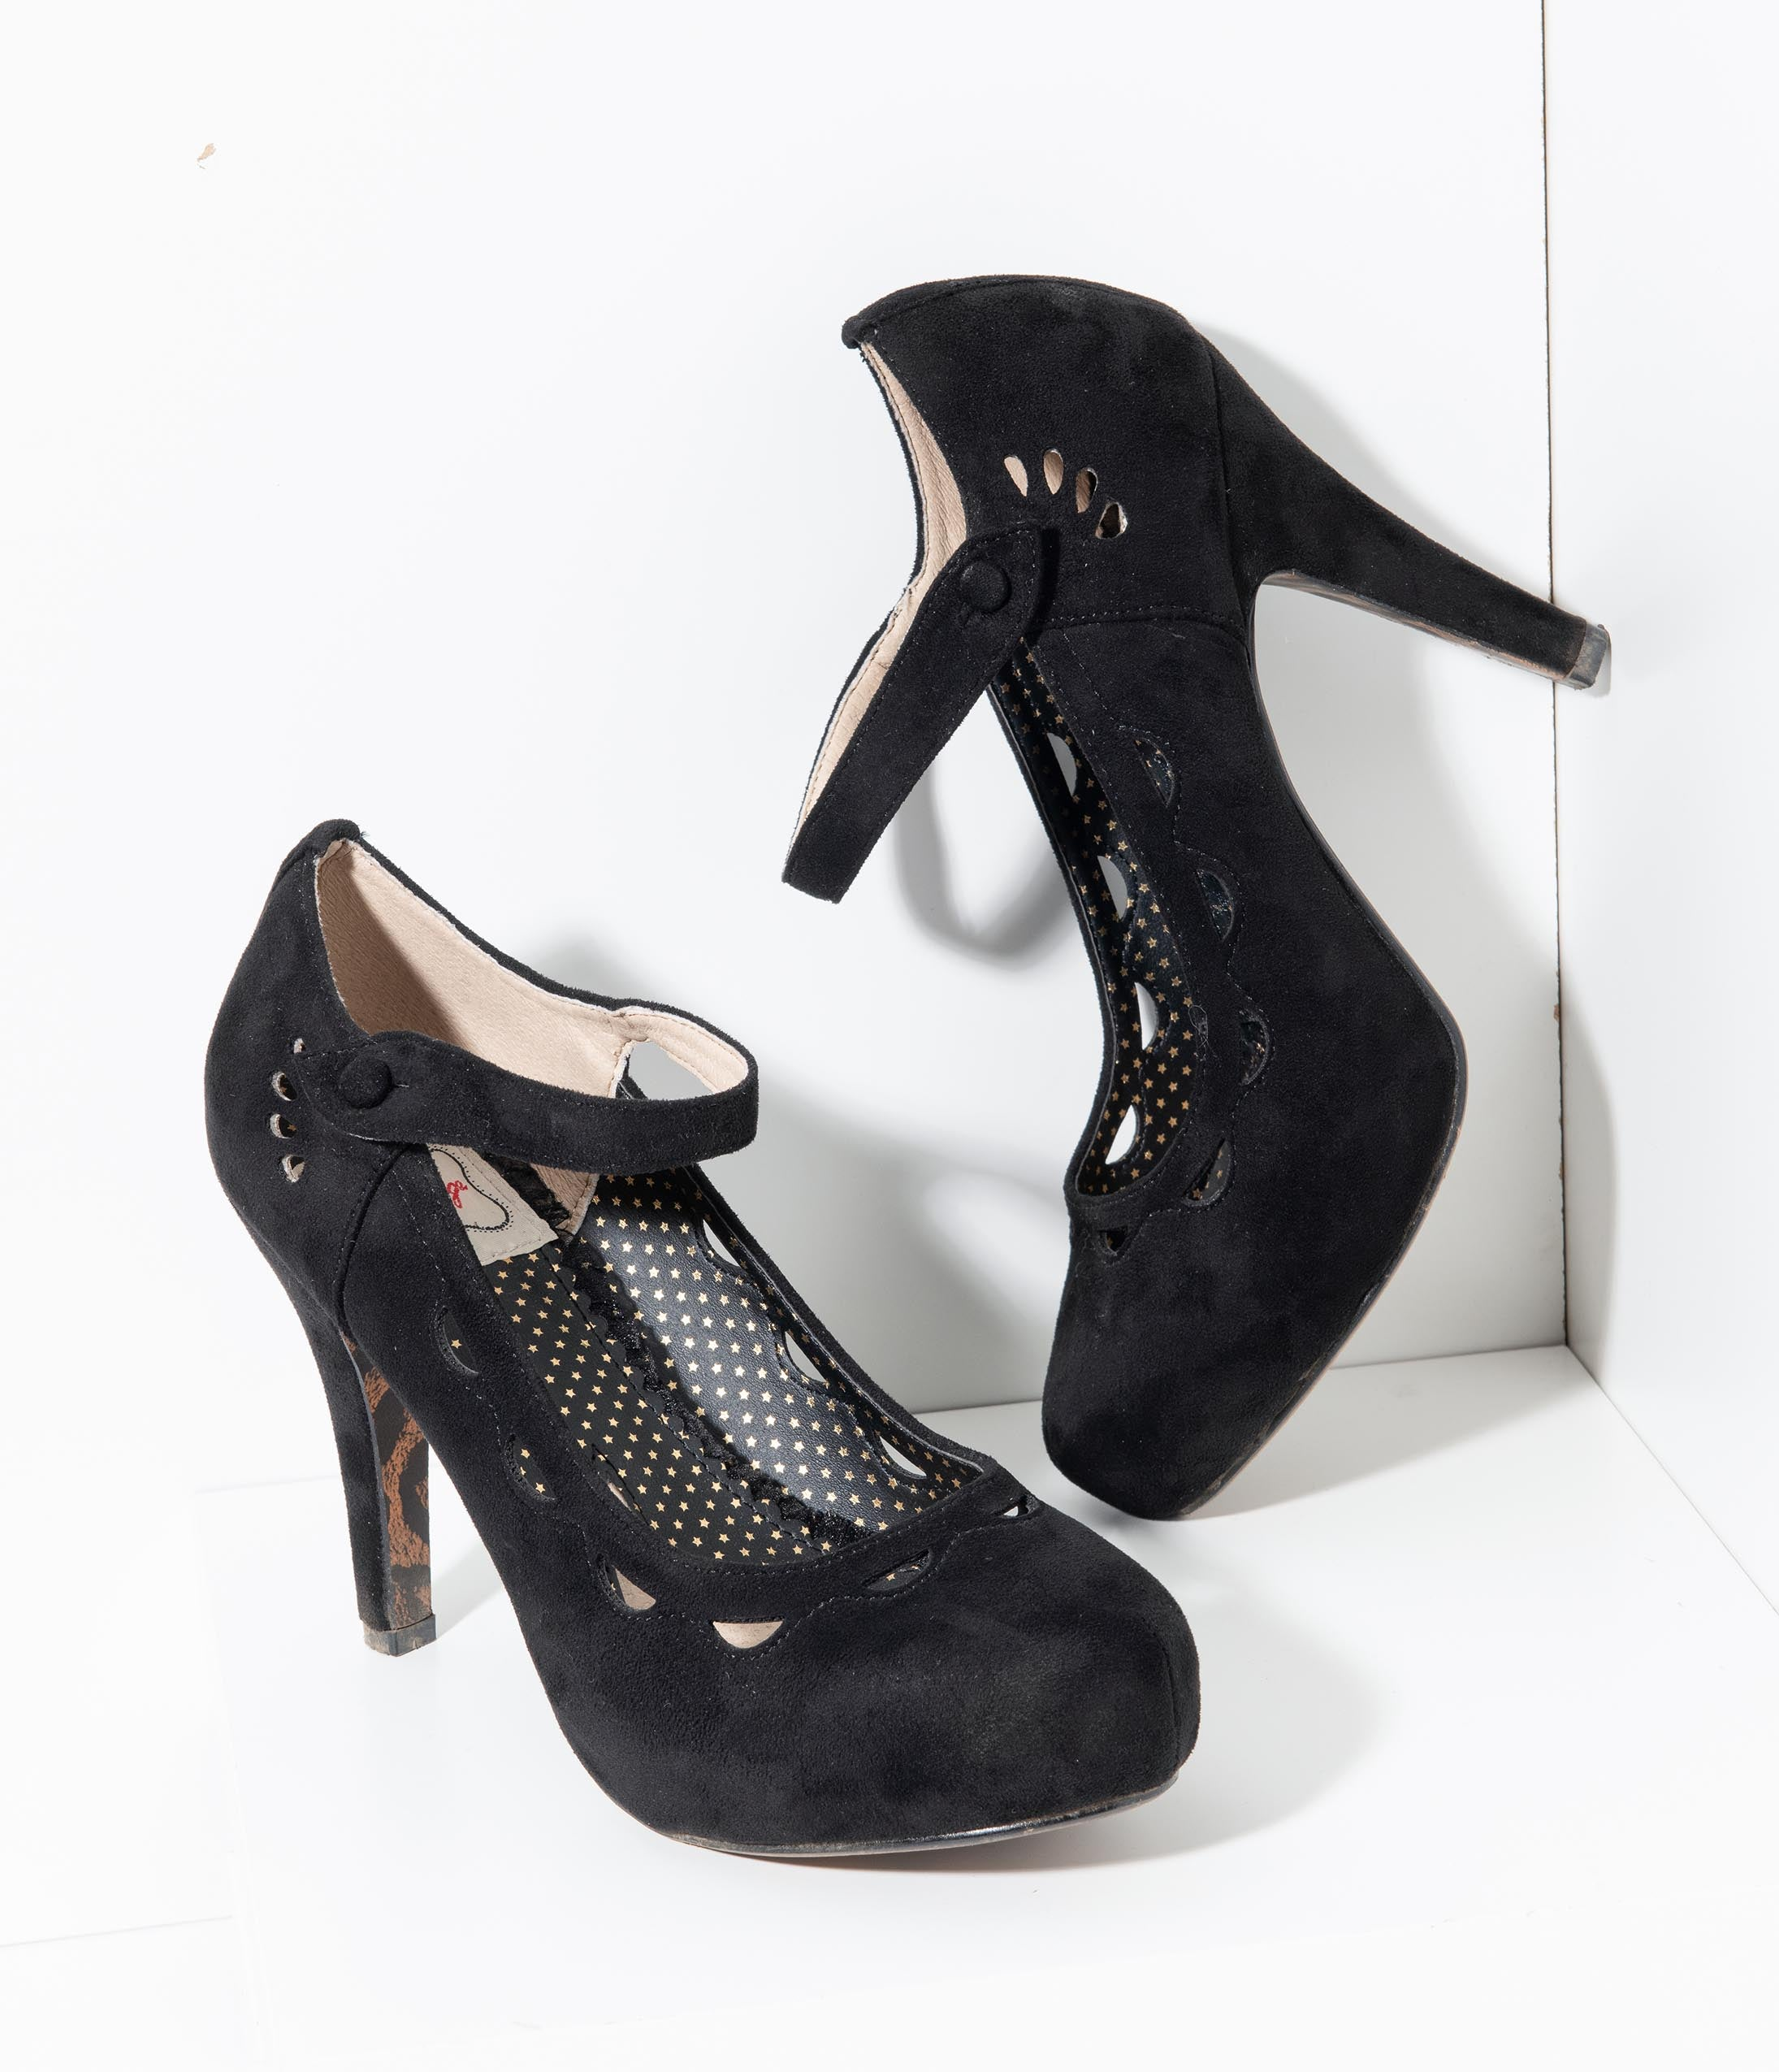 Vintage Style Shoes, Vintage Inspired Shoes Bettie Page Black Suede Mary Jane Yvette Pumps $76.00 AT vintagedancer.com